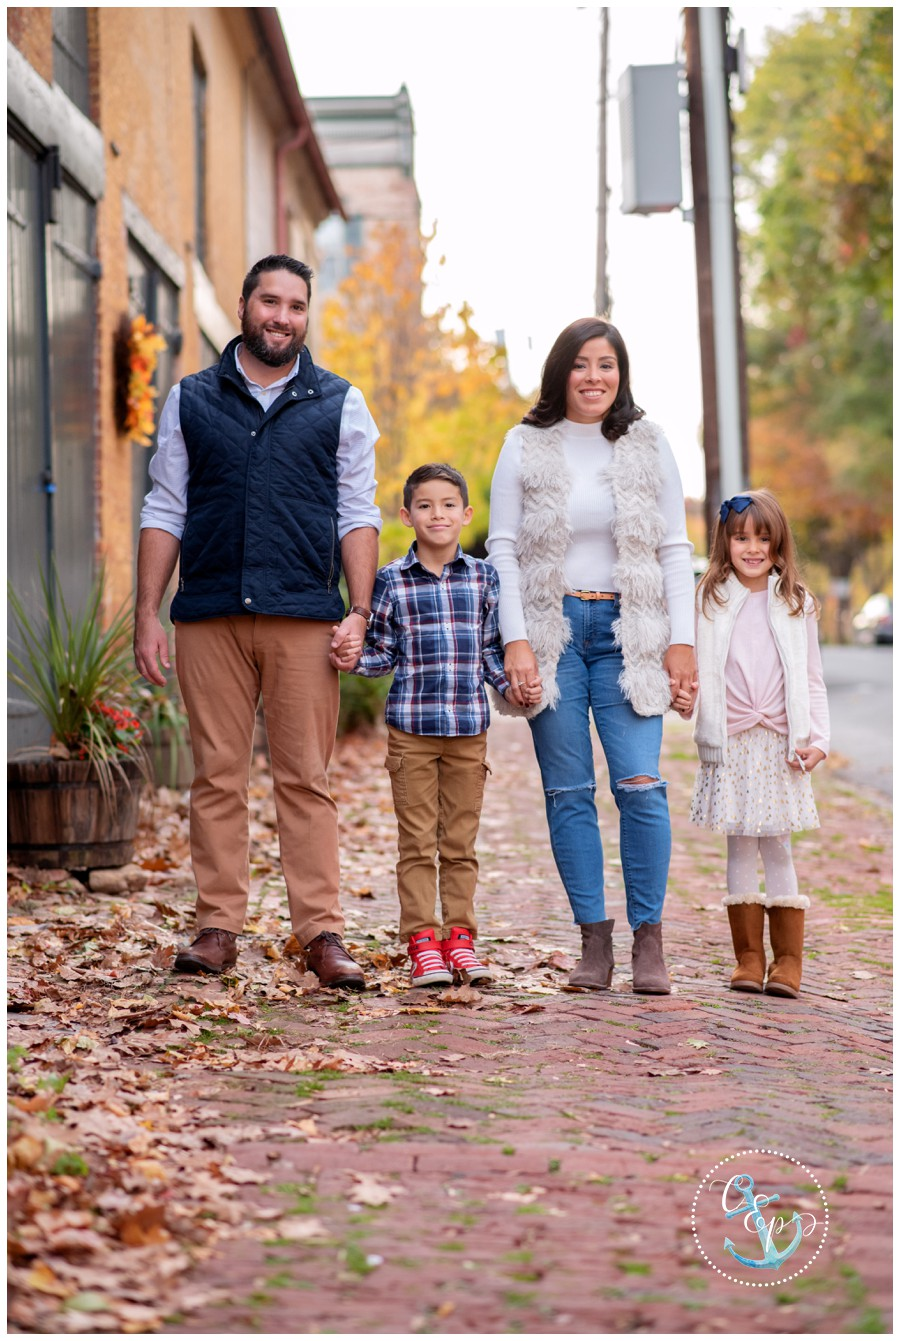 Downtown Frederick Family Photographer, Cristina Elisa Photography LLC, Frederick MD Family Pictures, Family portrait session downtown, Maryland Portrait Photographer